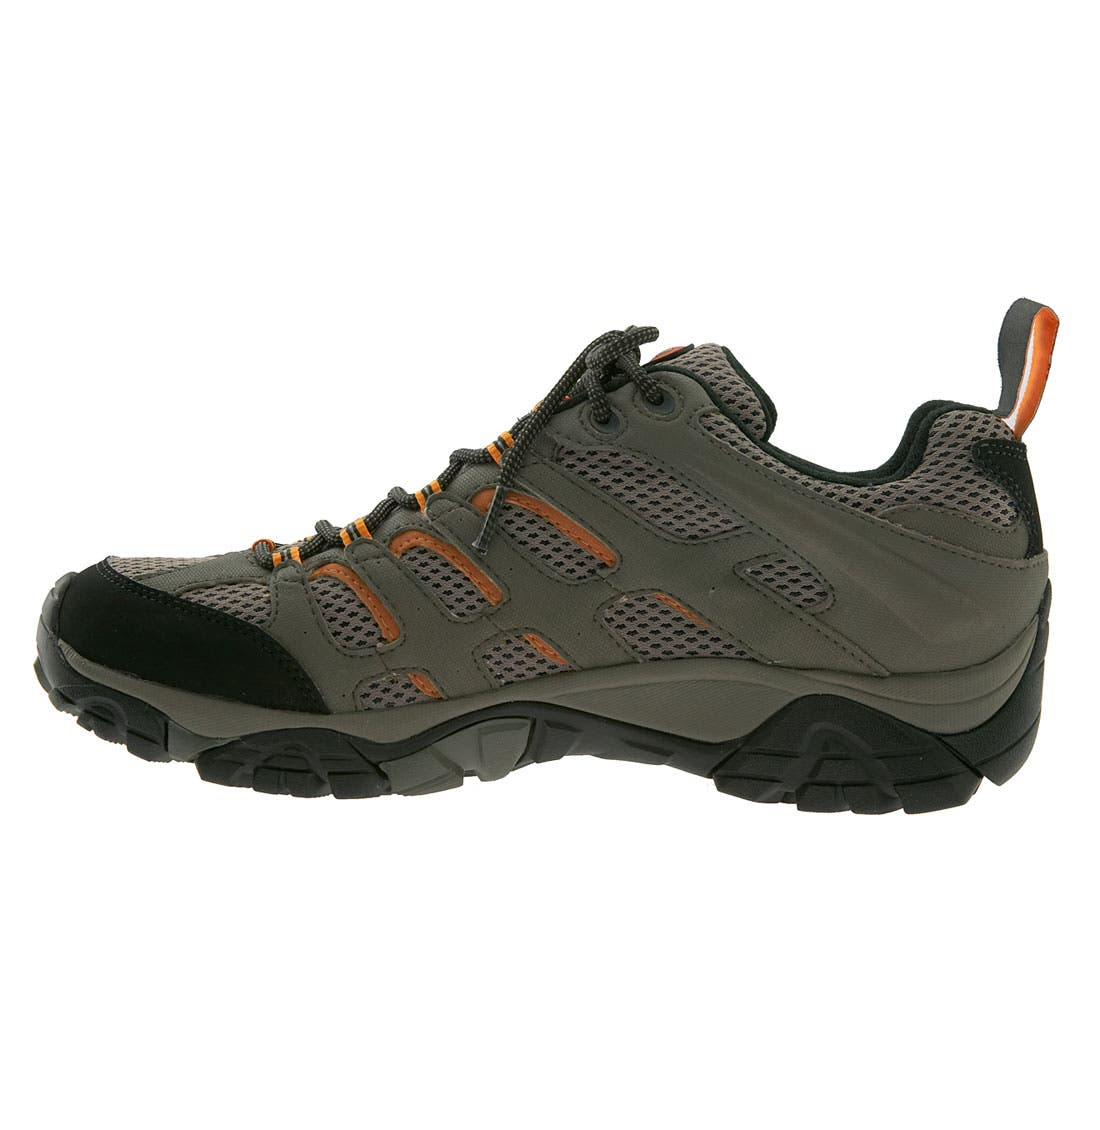 Alternate Image 2  - Merrell 'Moab GTX XCR' Hiking Shoe (Men)